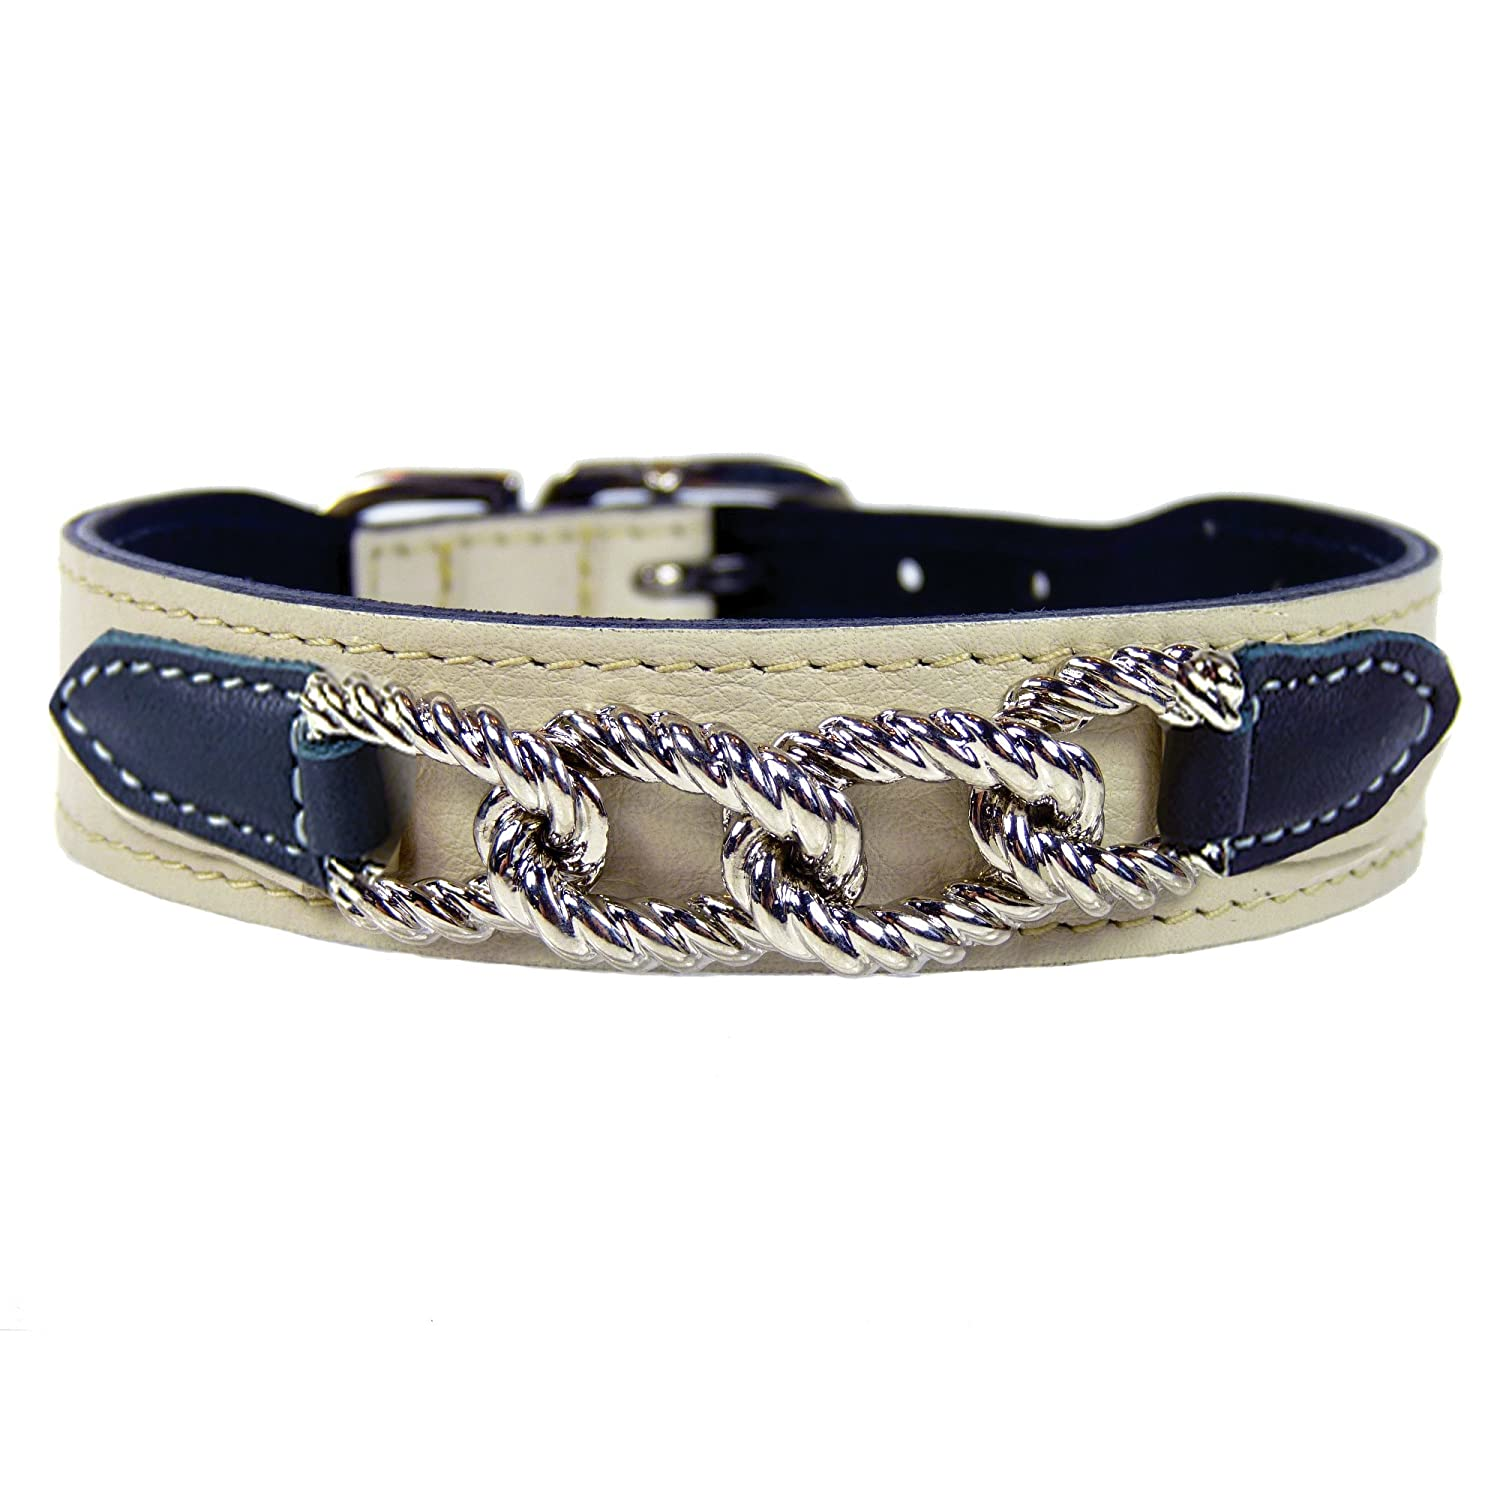 Hartman & pink 1458 Mayfair Dog Collar, 10 to 12-Inch, Eggshell with Charcoal Tabs